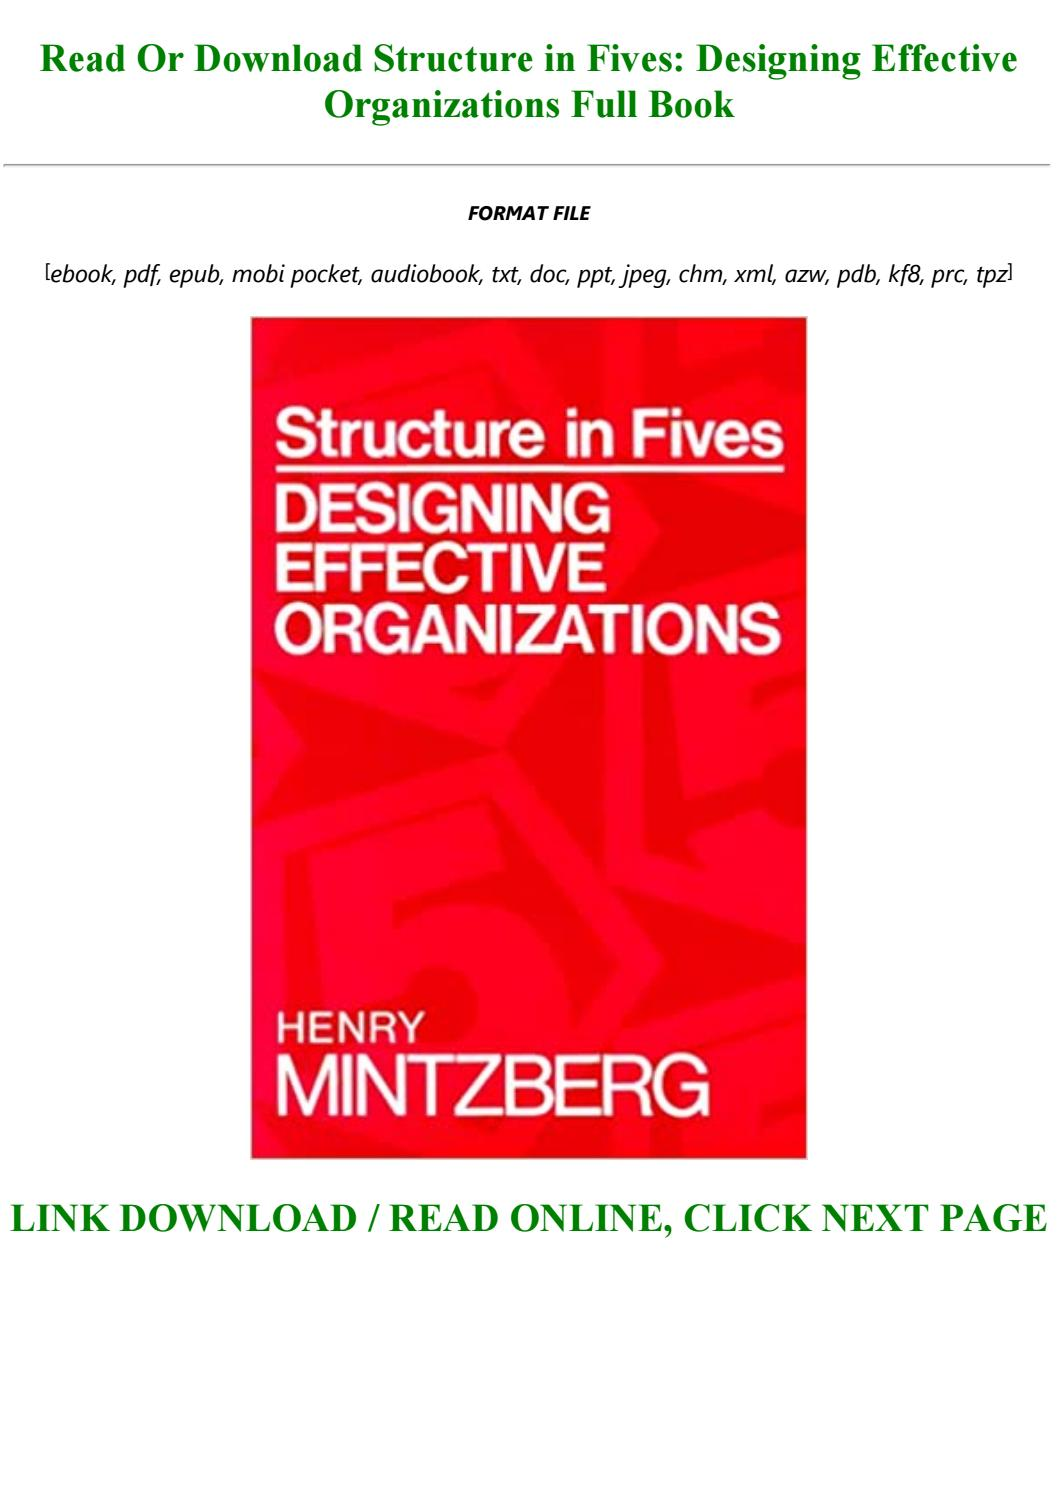 Pdf Download Structure In Fives Designing Effective Organizations Full Pdf By Julienemard1o1 Issuu